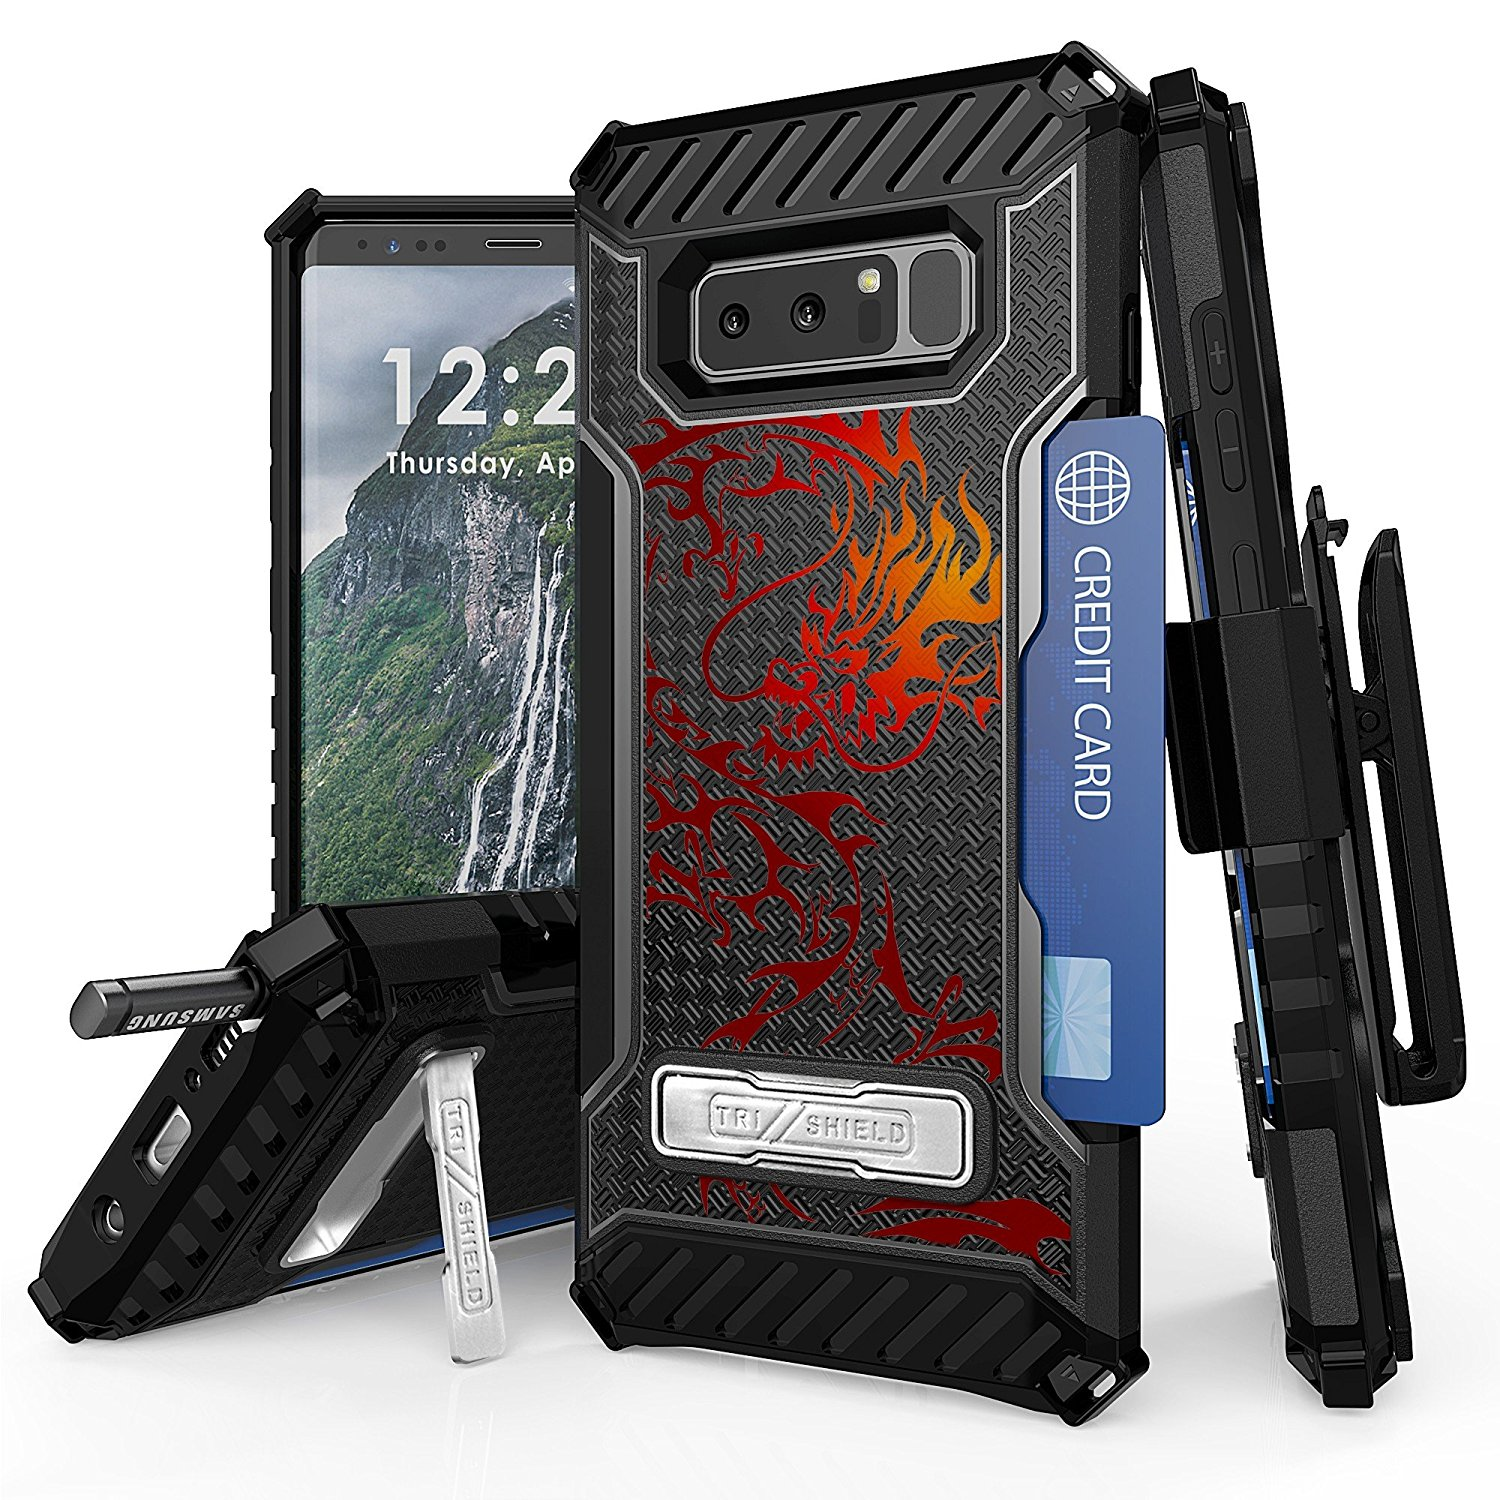 Galaxy Note 8 Case, Spots8 Dual Layer Hybrid Armor Rugged Bumper Protection Phone Cover With Screen Protector Swivel Holster Phone Strap Built in kickstand And Card Slot Tribal Color Dragon